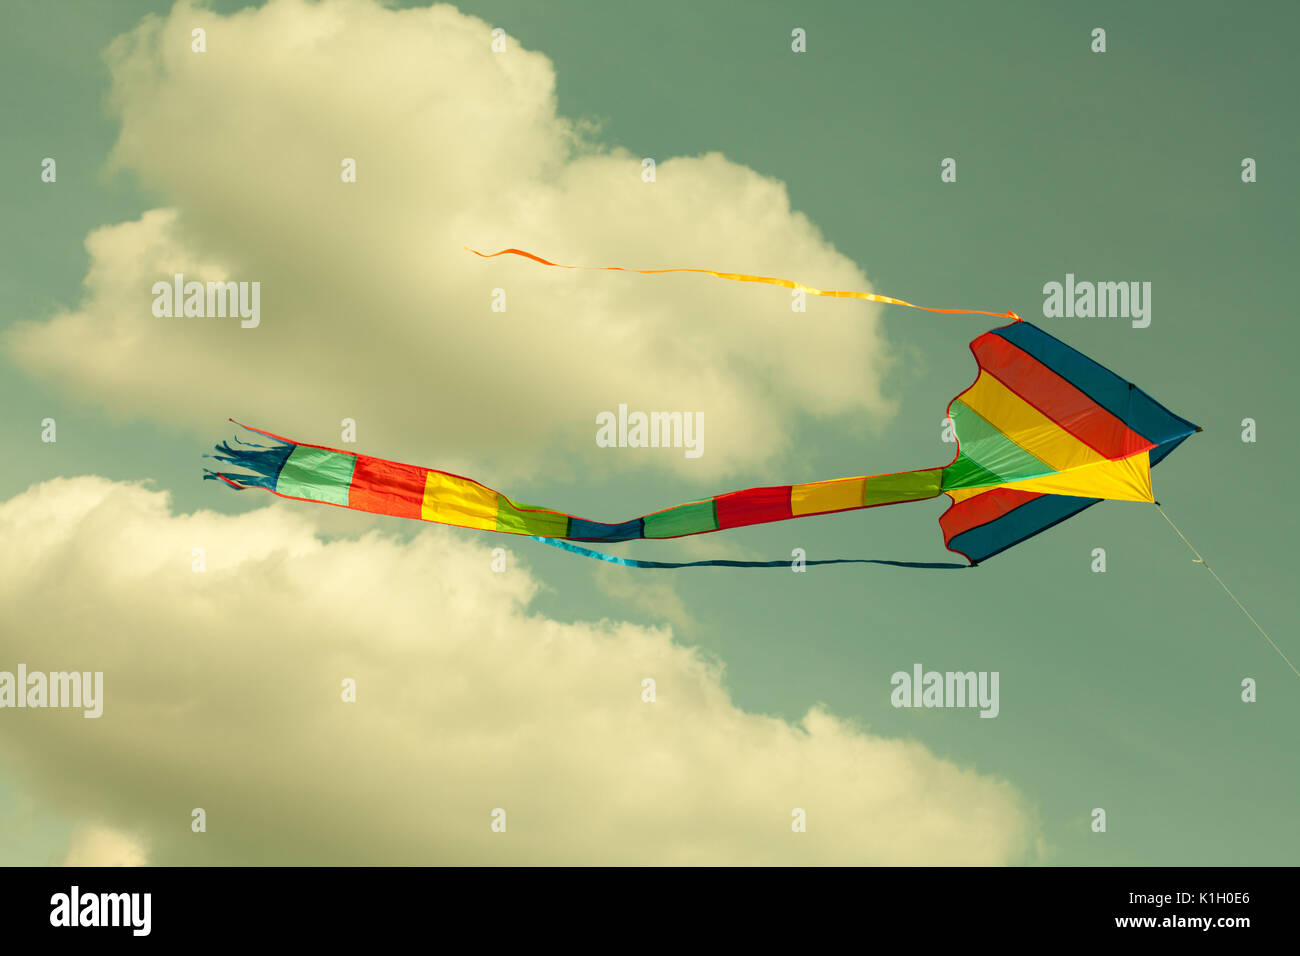 Multicolor kite flying in the cloudy sky. Retro style. (Toned photo.) - Stock Image